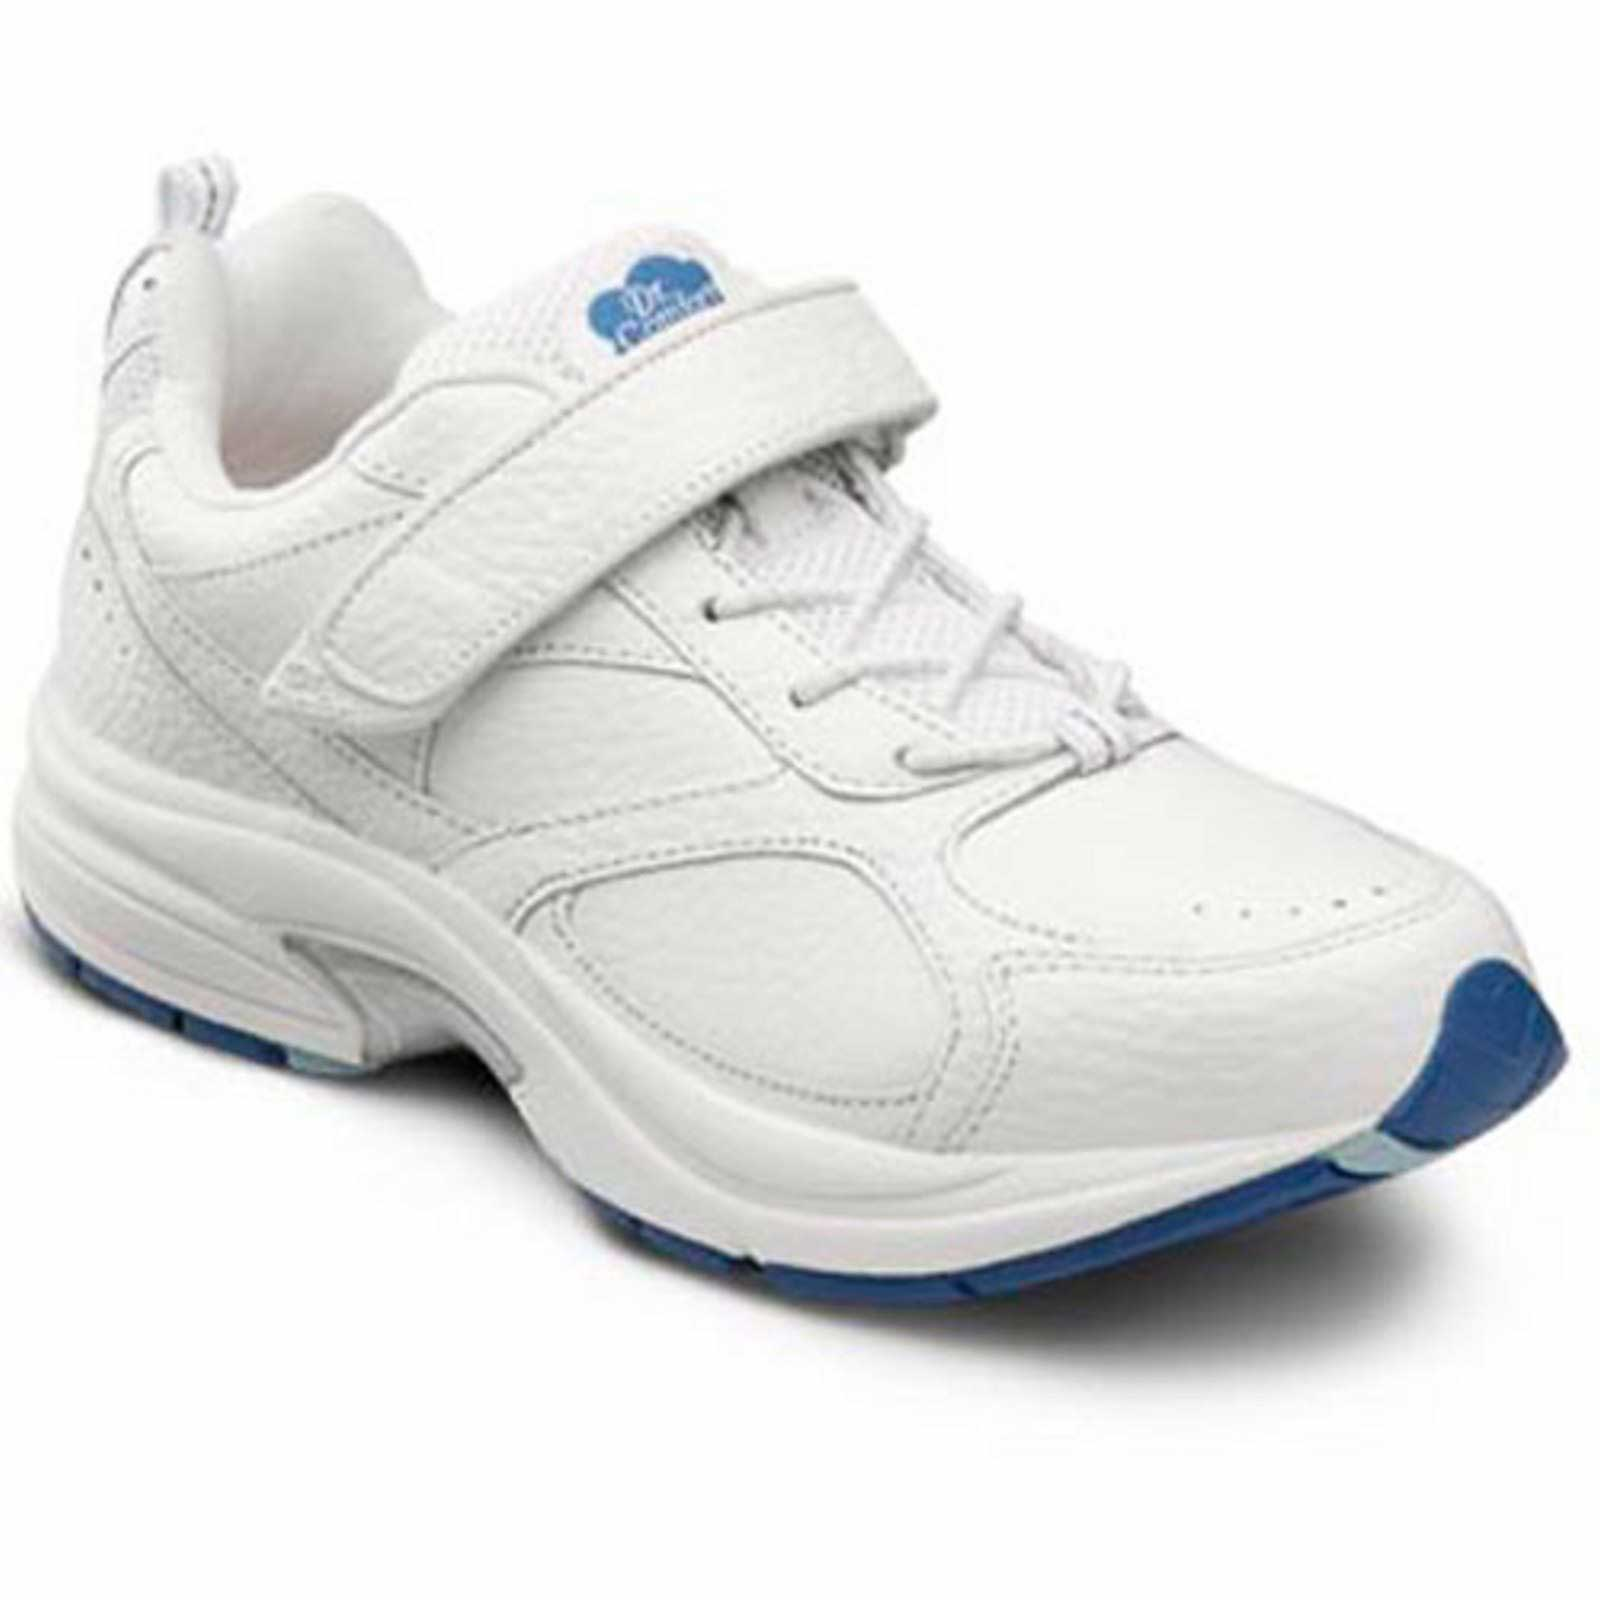 Best Tennis Shoes For Orthotics